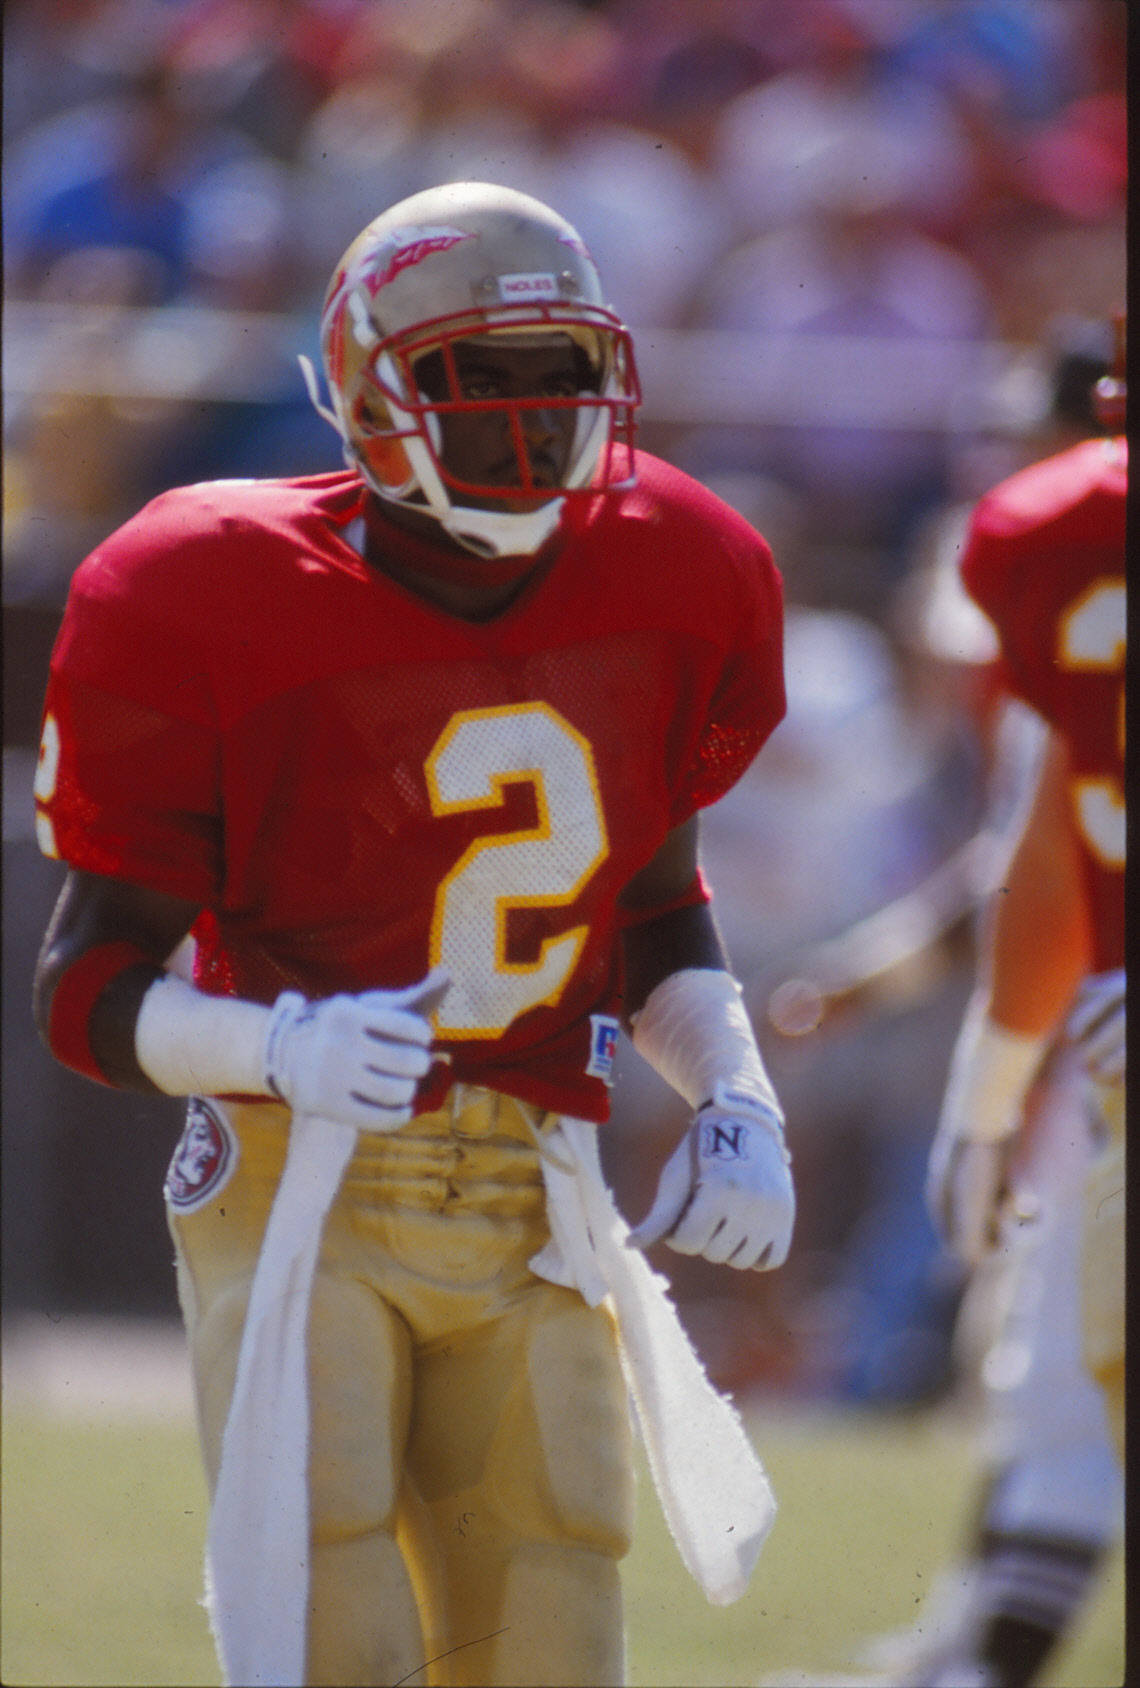 timeless design 177b9 e3dde TBT: Deion Sanders